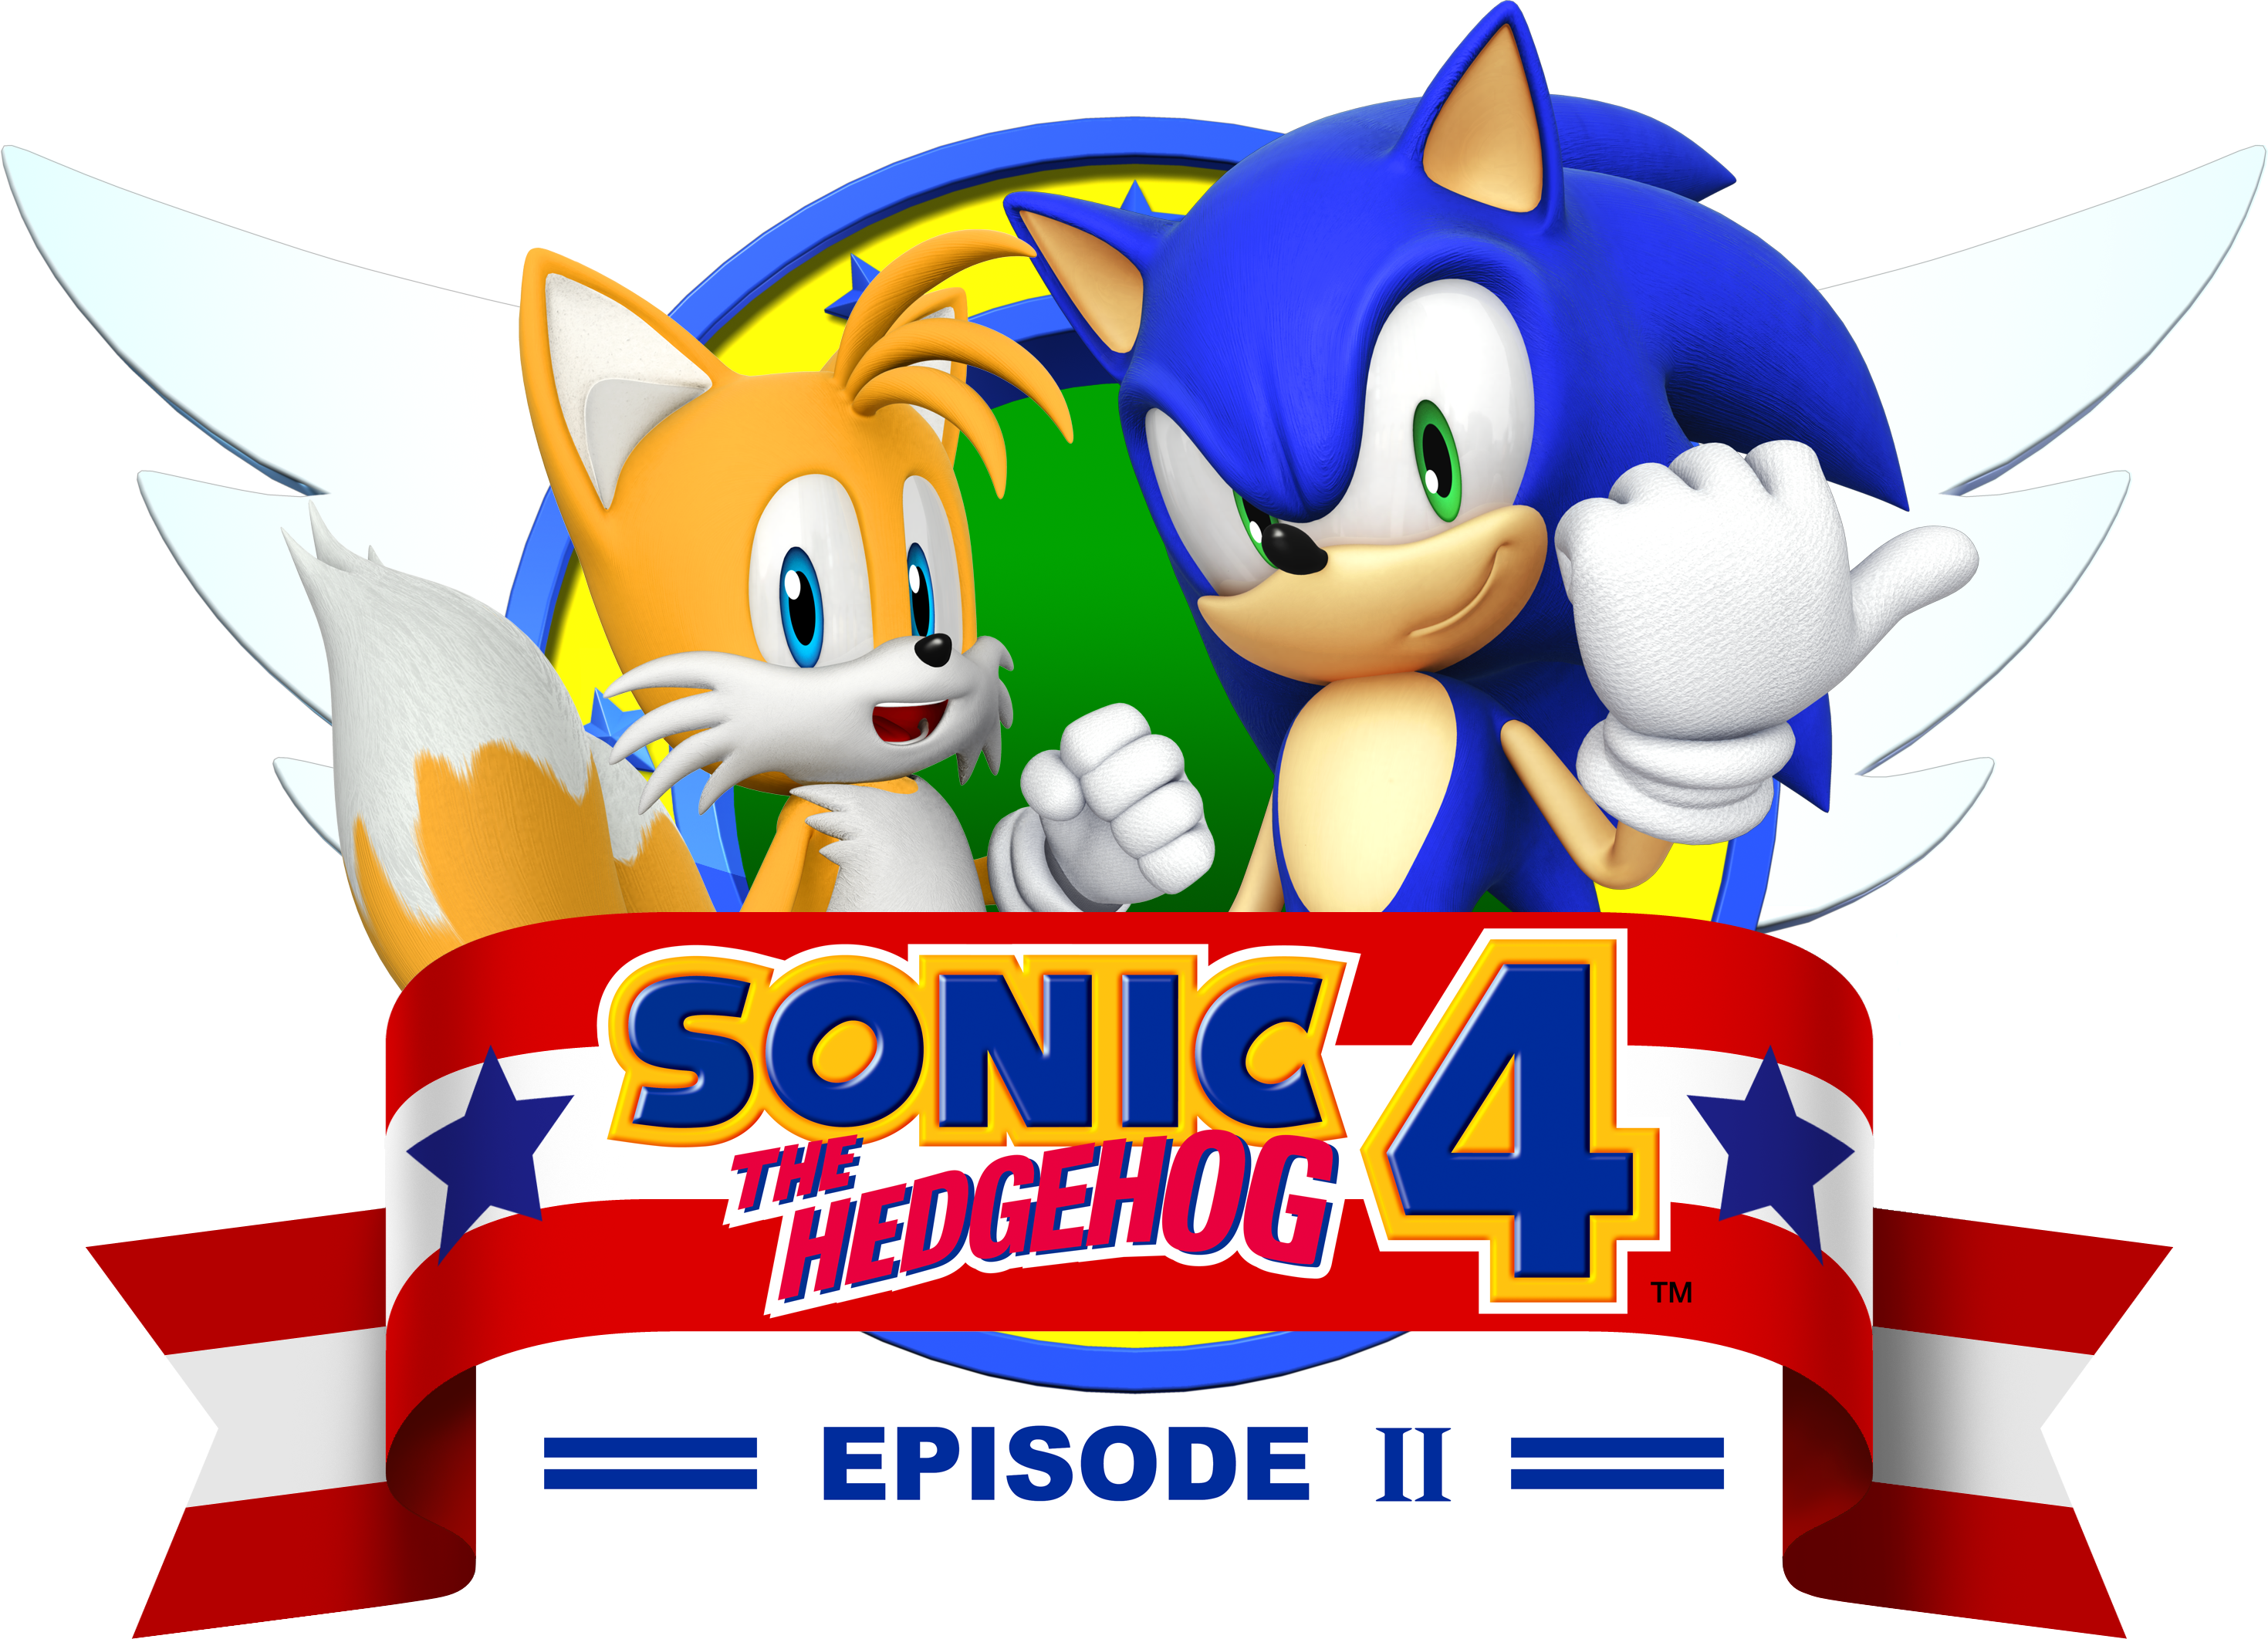 File:Sonic-the-hedgehog-4-episode-2.png